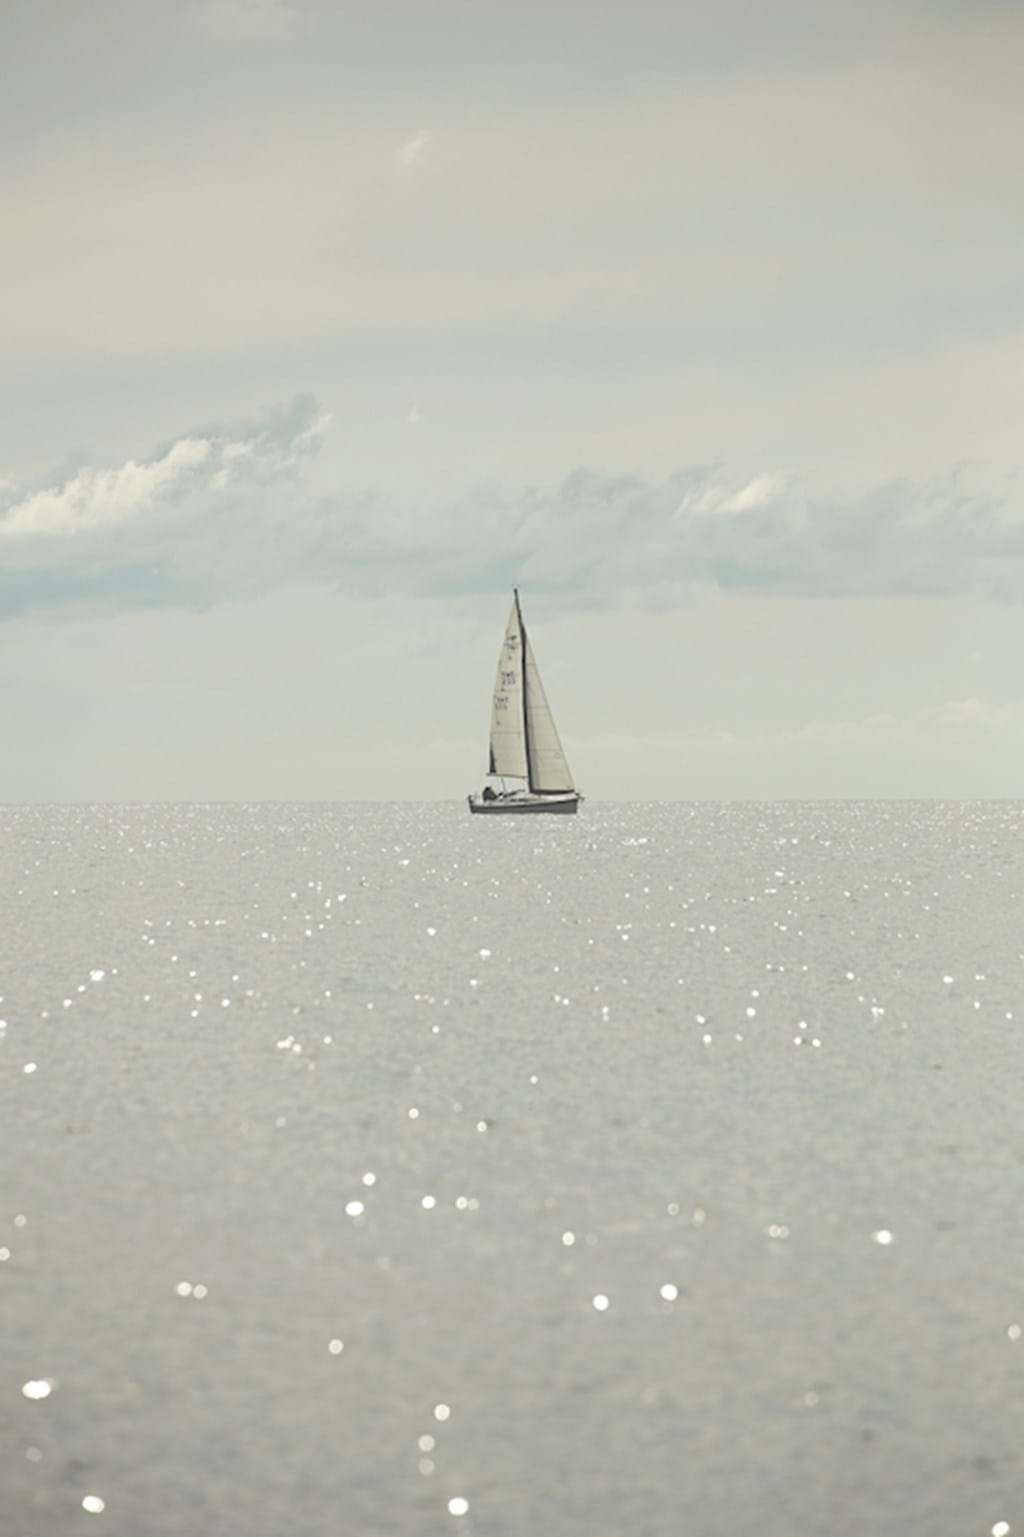 Poster: Sailing boat - Digital